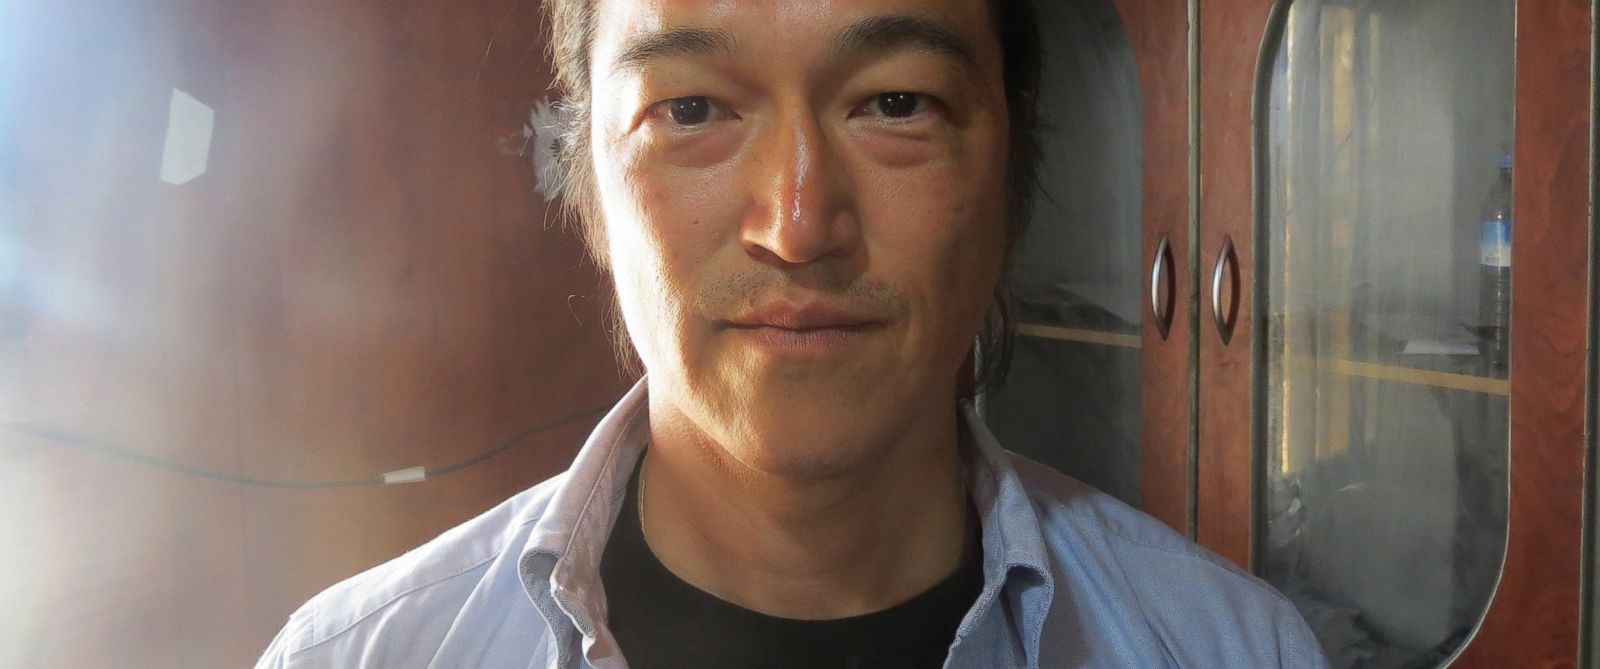 PHOTO: In this file photo dated as April 25, 2014, Japanese journalist Kenji Goto Jogo, captured by Islamic State of Iraq and Levant (ISIL) and one of two Japanese hostages, is seen in Aleppo, Syria.